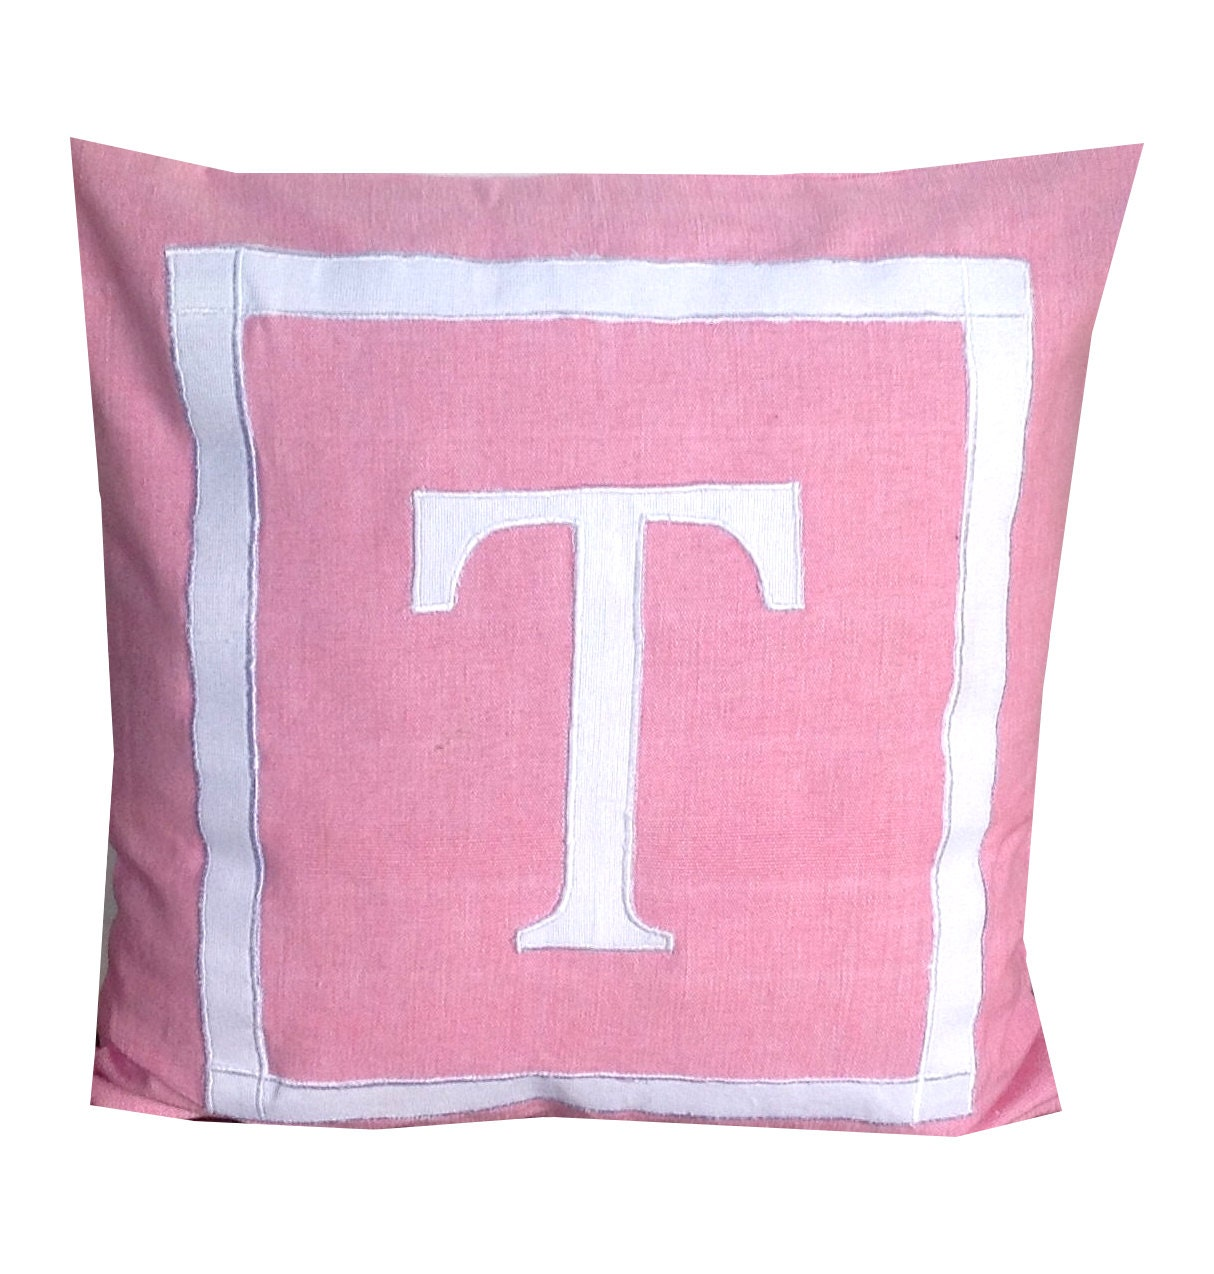 Throw Pillows Nairobi : 30% OFF Monogram Nursery pillows Pink Throw Pillows Nursery